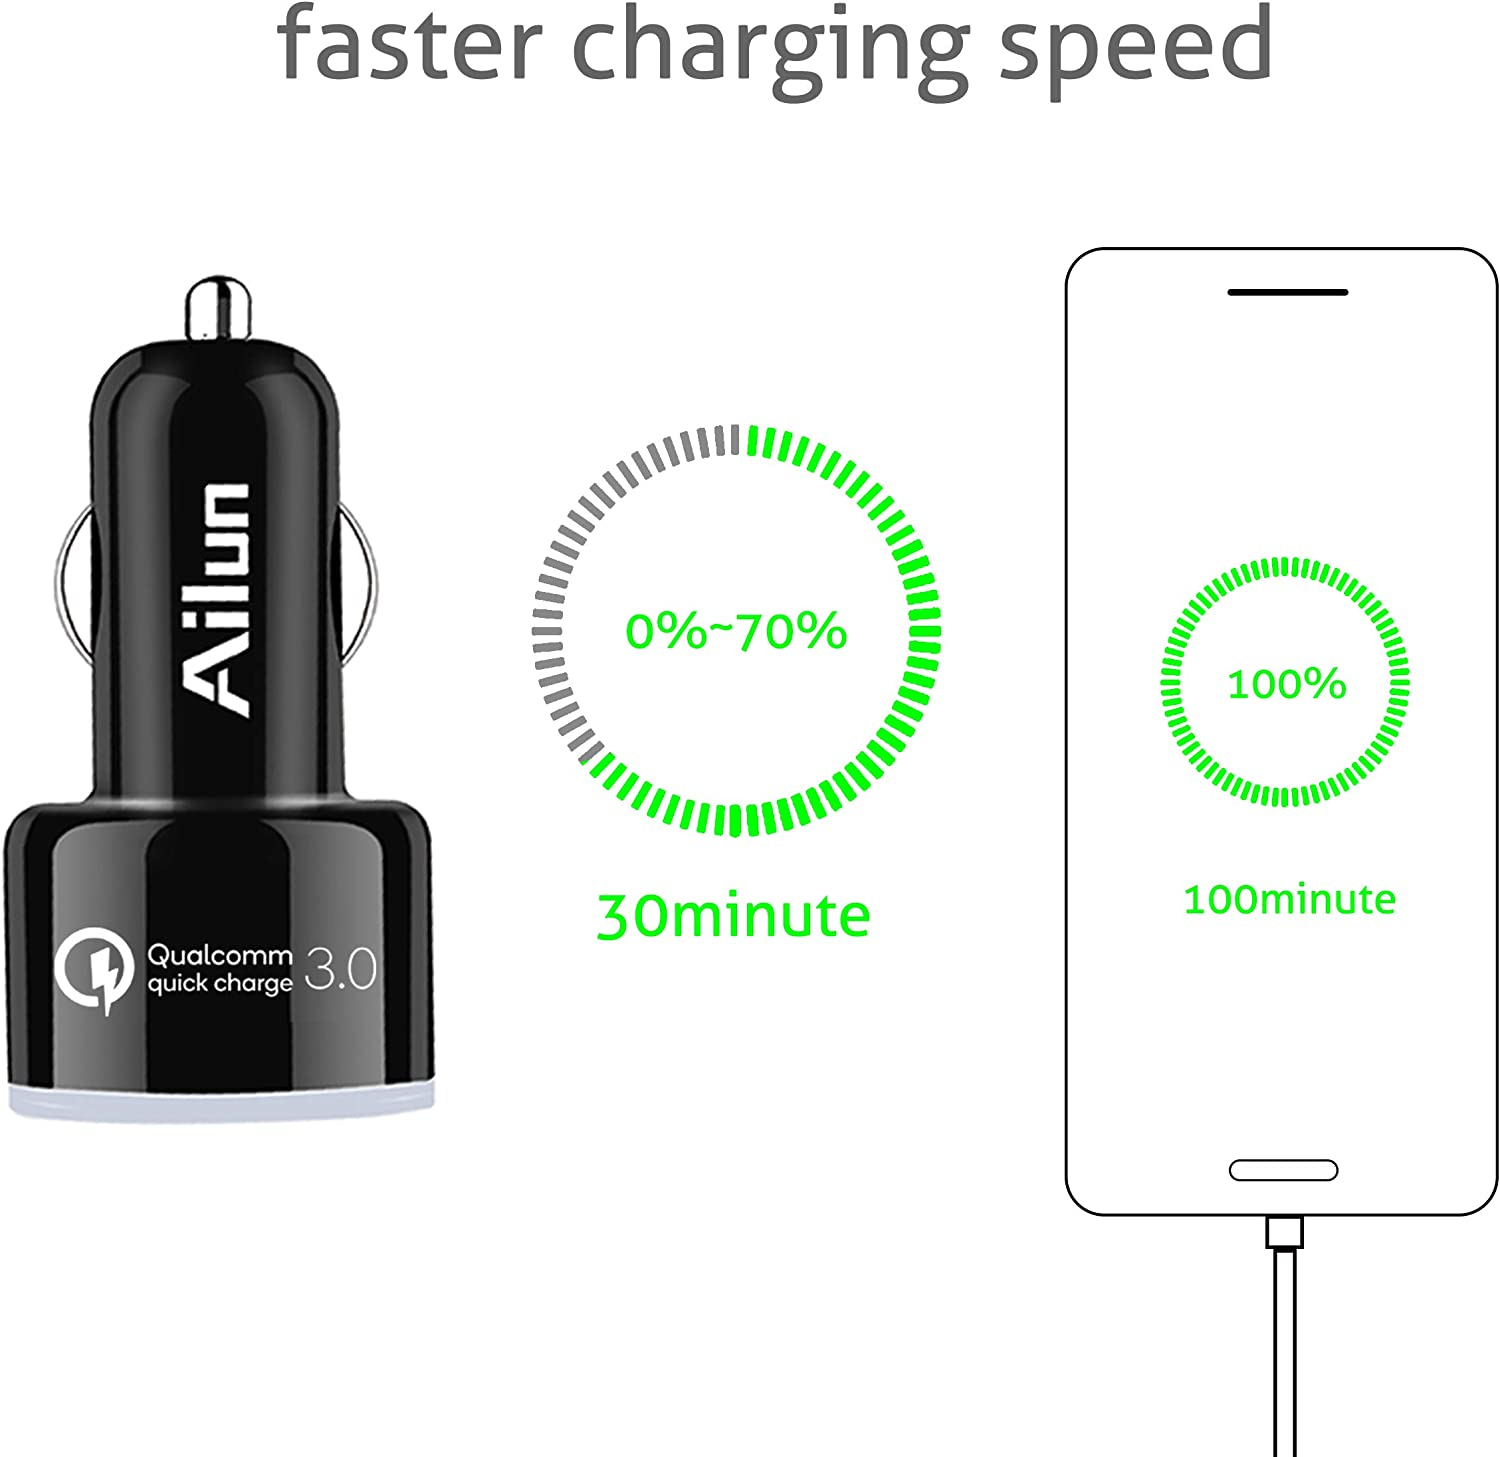 Ailun Fast Car Charger Dual Qualcomm Quick Charge 3.0 Ports Adapter Charging for iPhone 11//11 Pro//11 Pro Max//X Xs XR Xs Max 8 7 Plus Galaxy s20 S20Ultra S9 S10 Plus S6 s Black s20